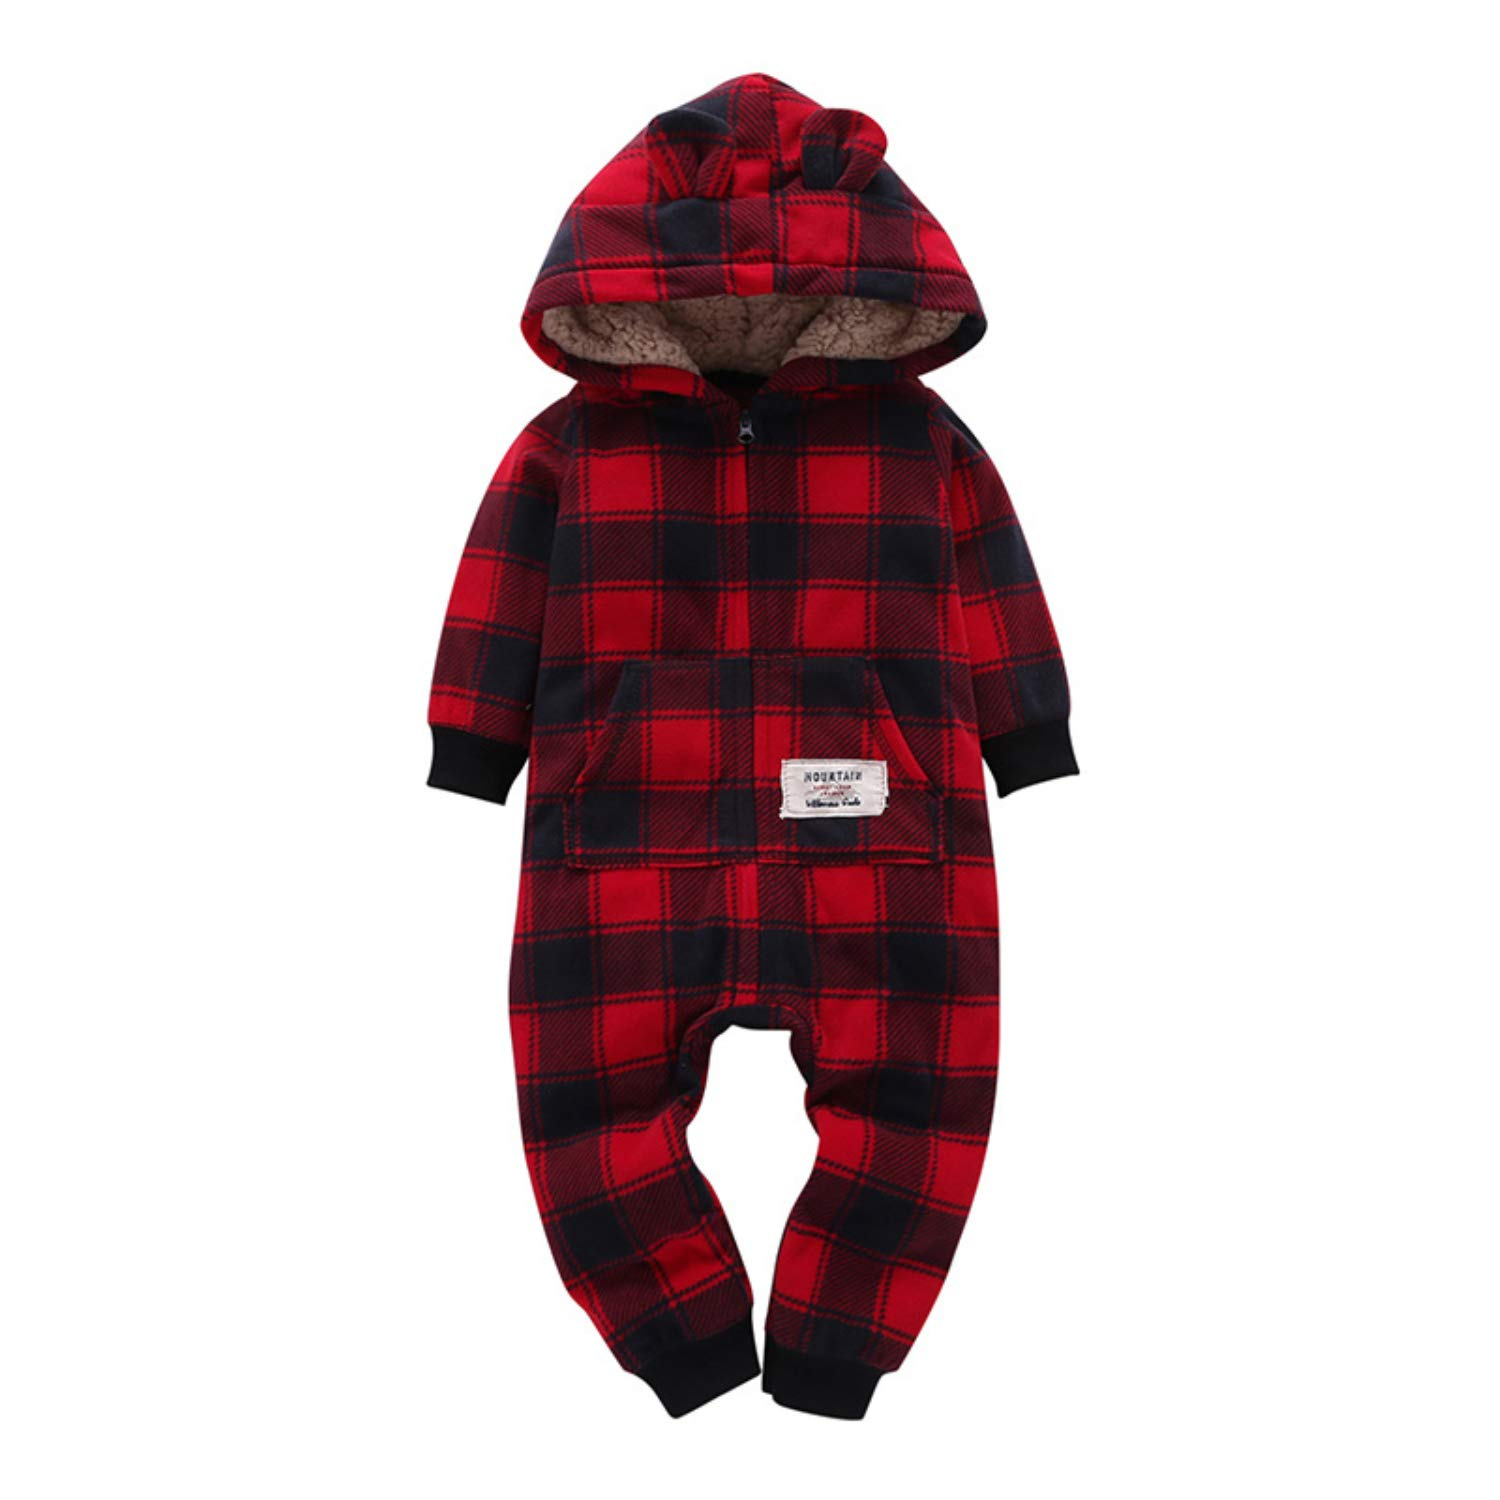 SSTQSAA Baby Boy Girls Fleece Hooded Jumpsuits Romper Outfit with Zipper Up